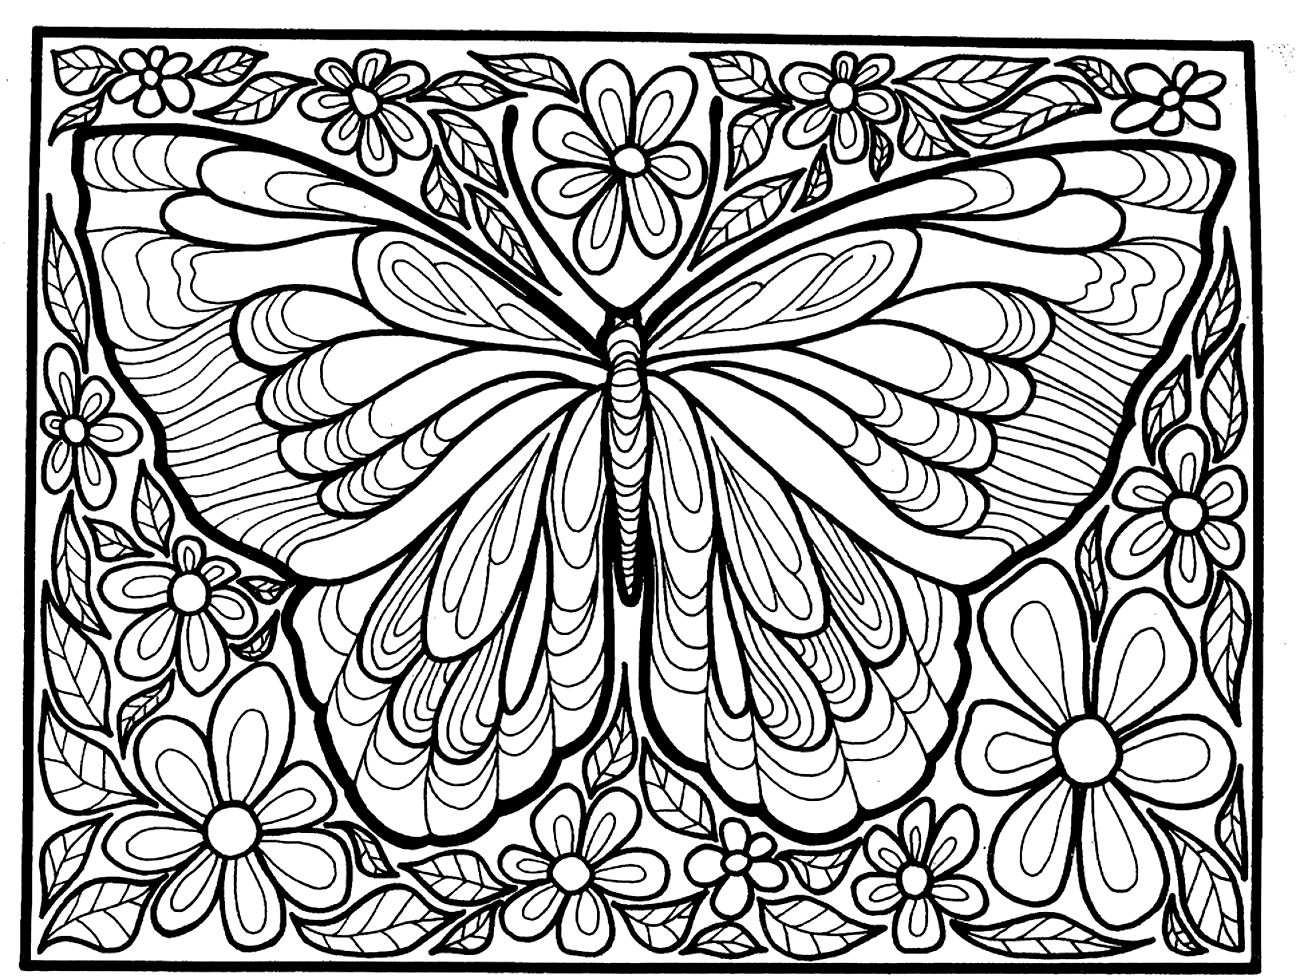 1300x979 Awesome To Print This Free Coloring Page Coloring Adult Difficult